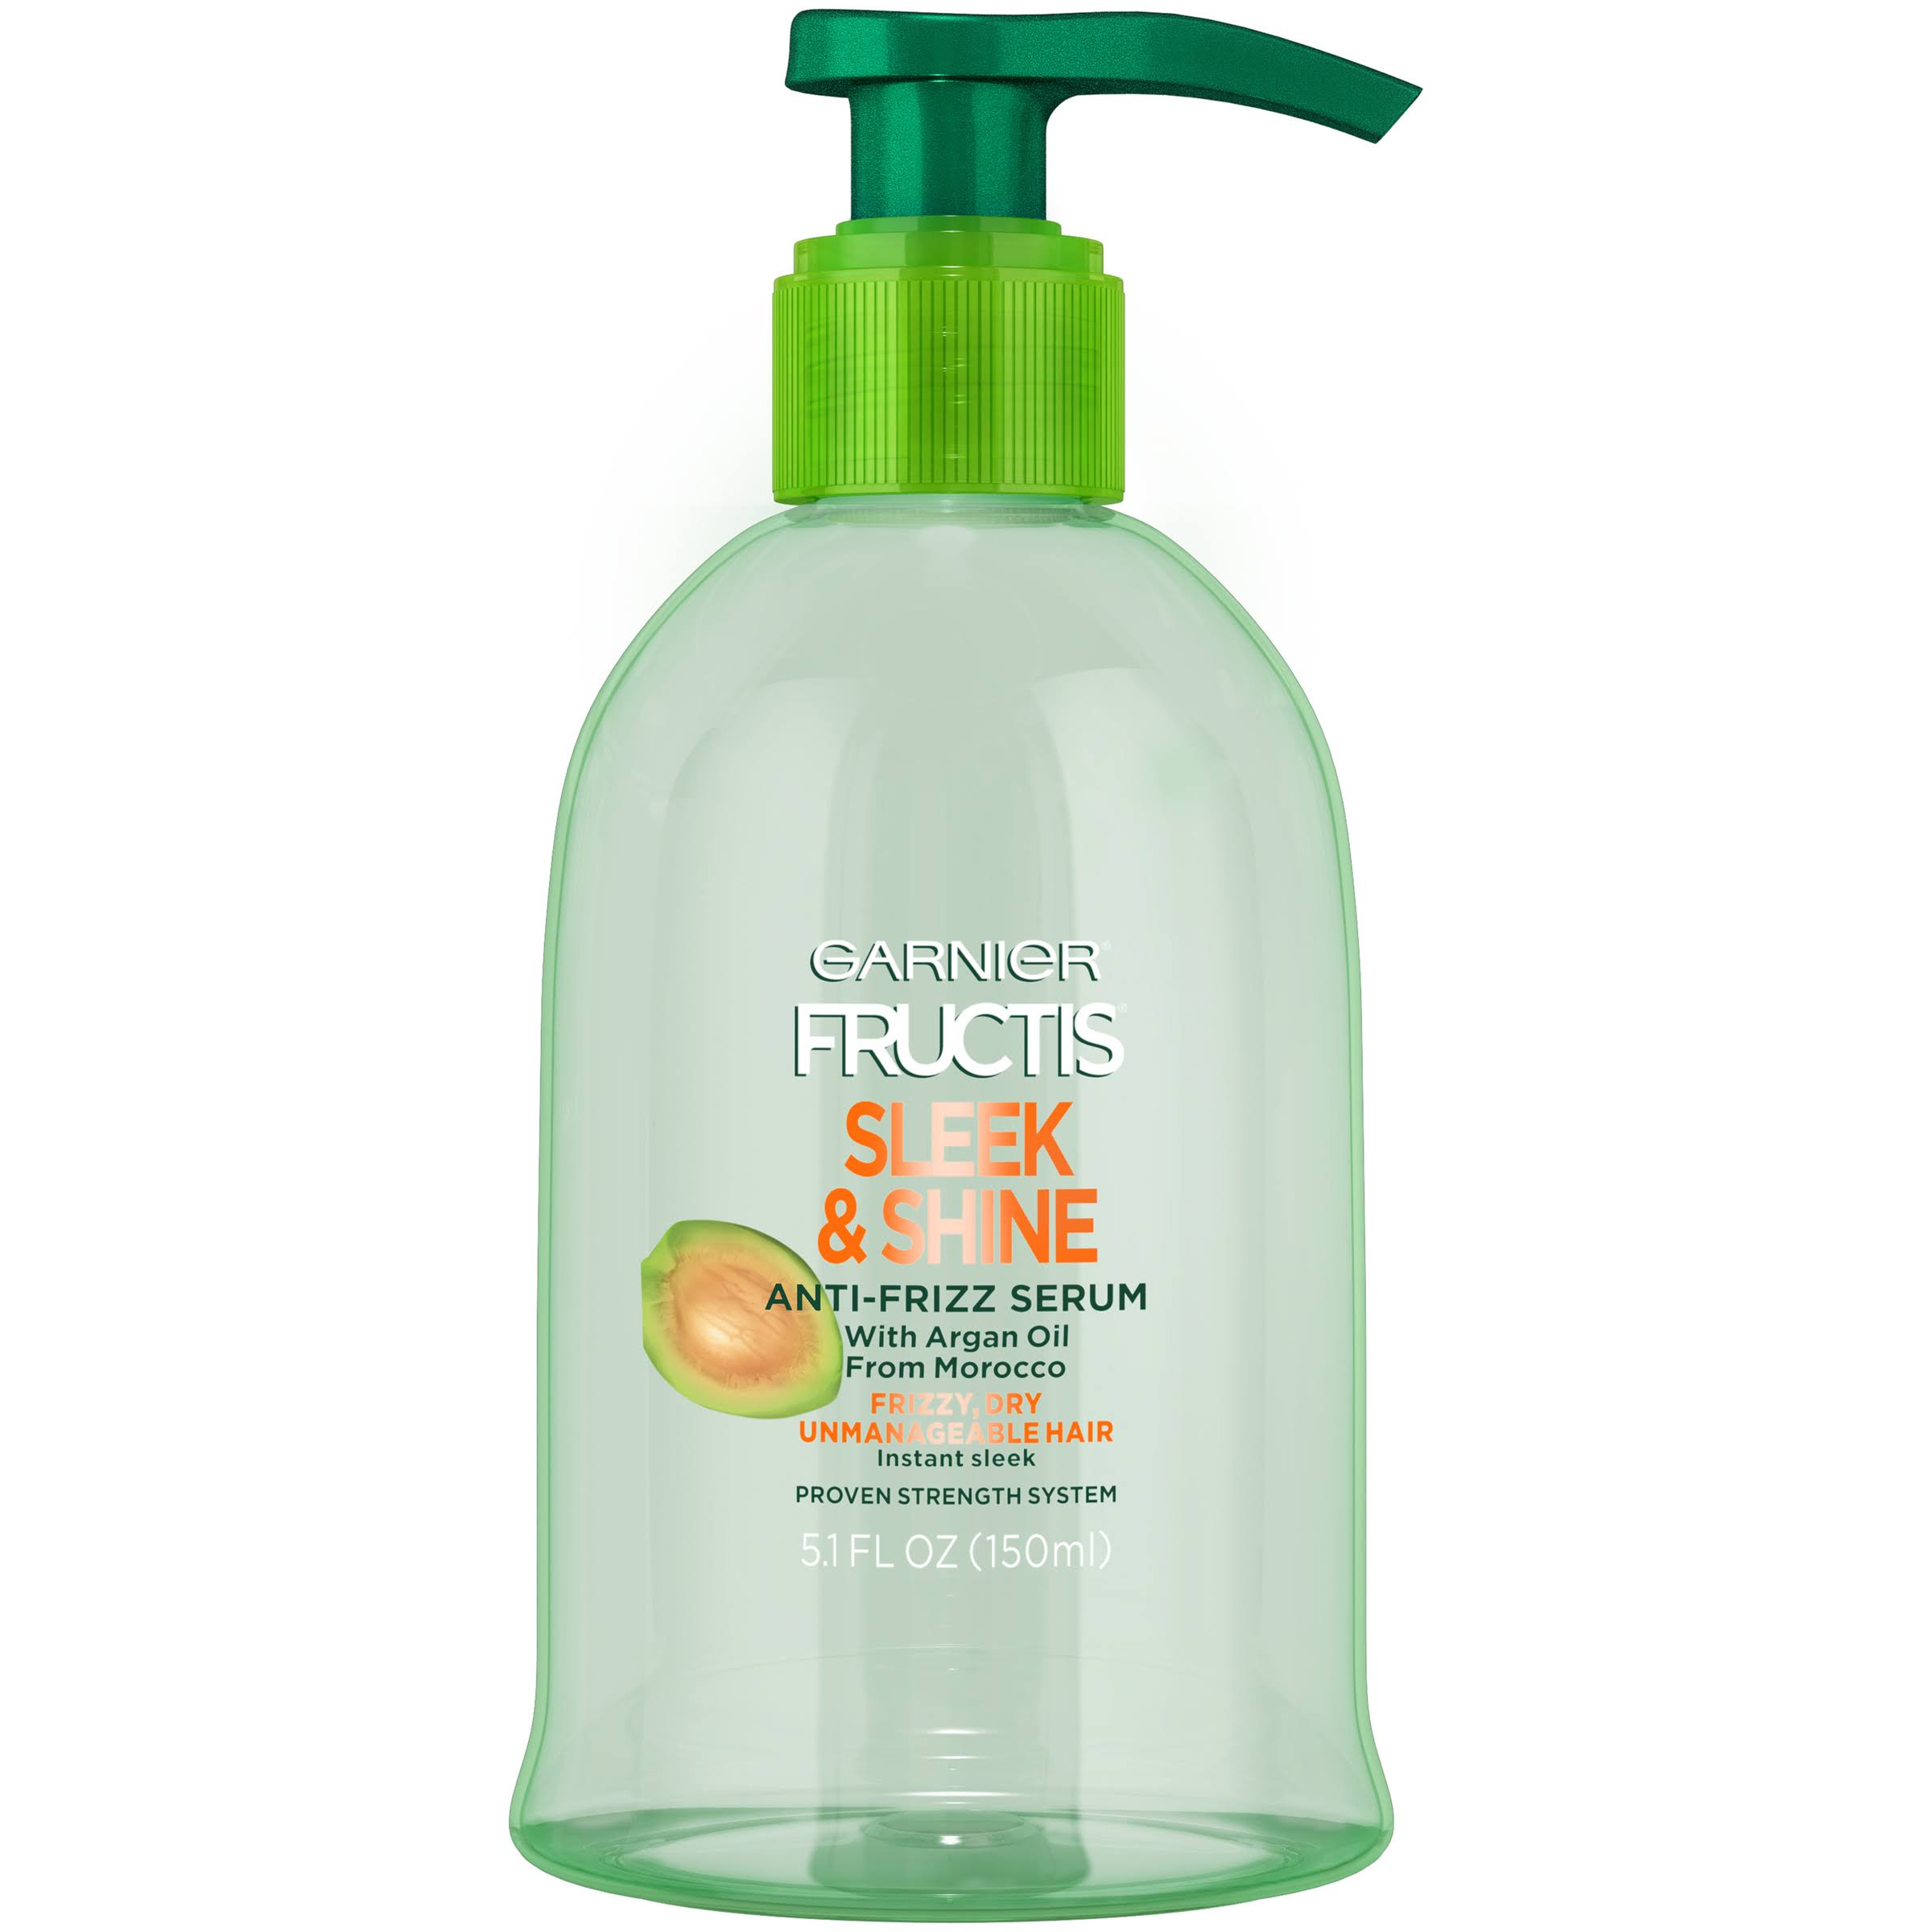 Garnier Fructis Sleek & Shine Anti-Frizz Serum - 5.1oz